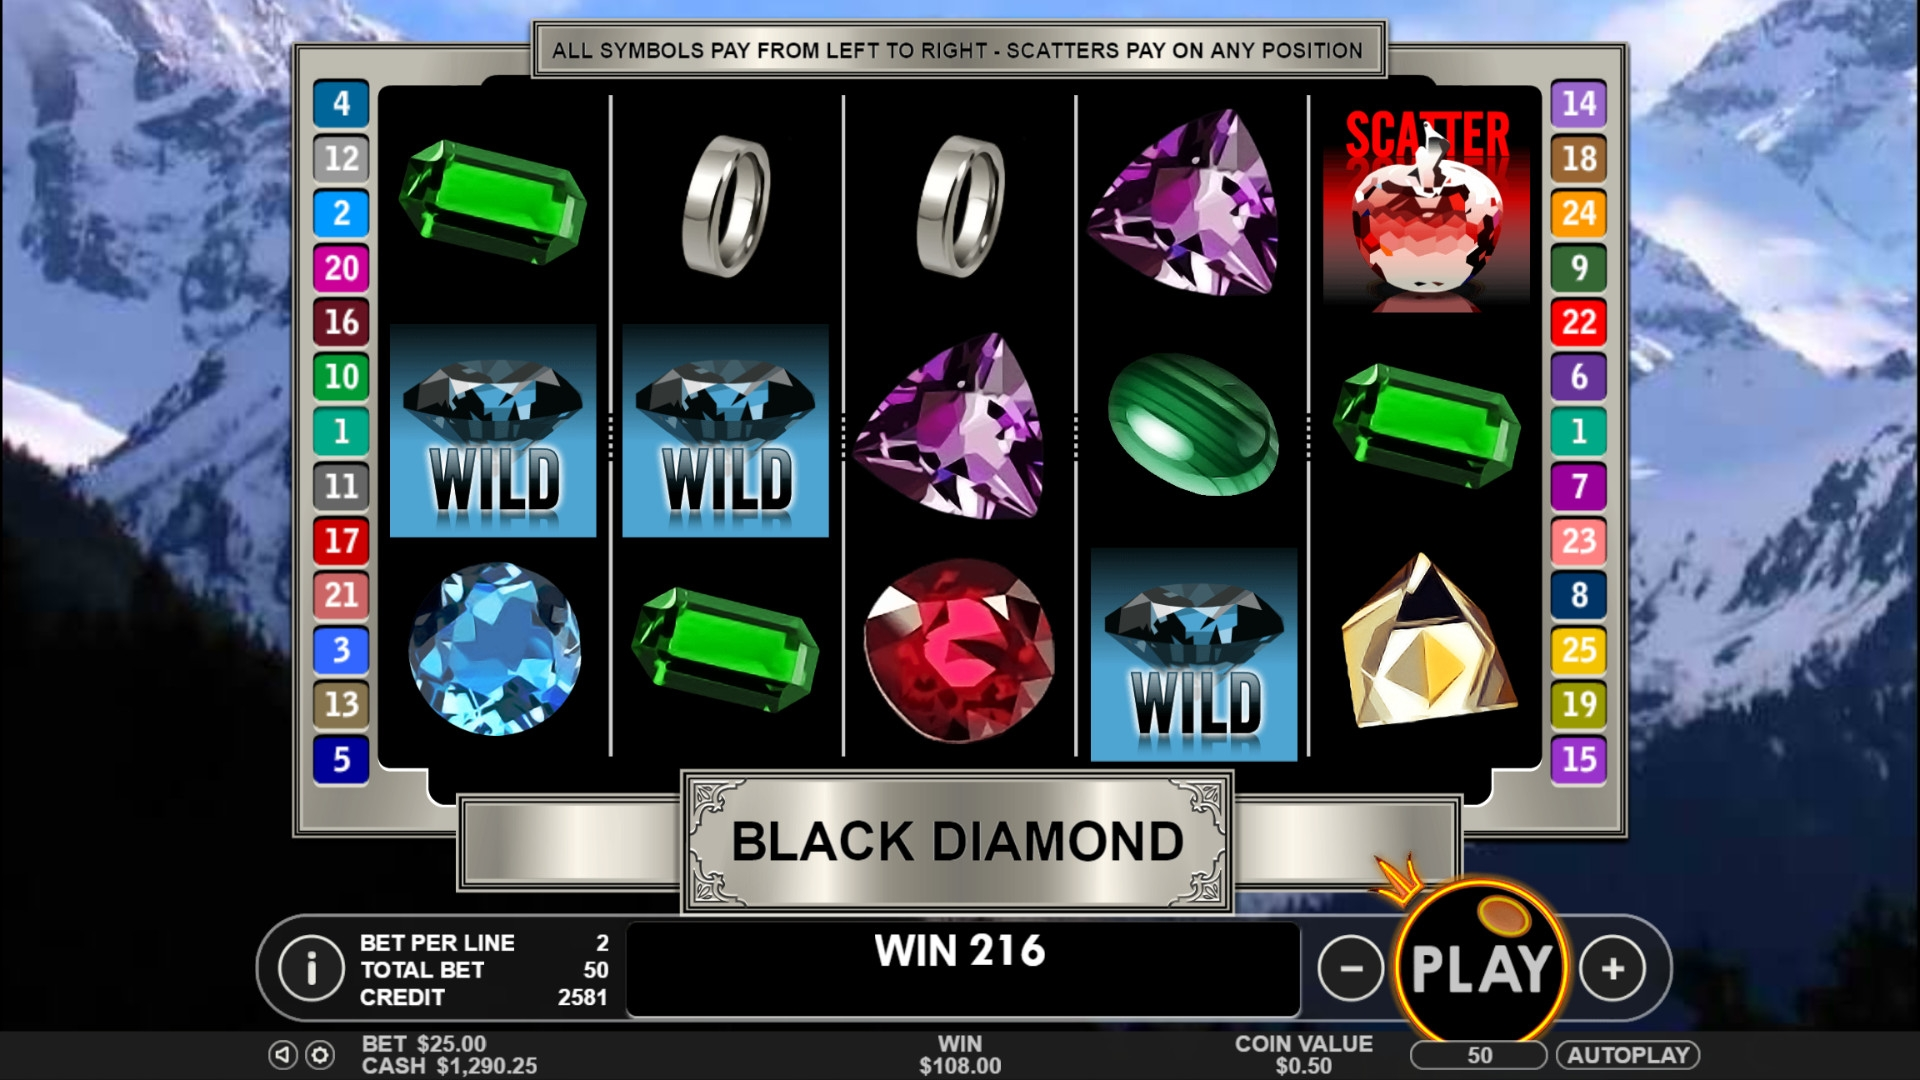 Black Diamond (Black Diamond) from category Slots